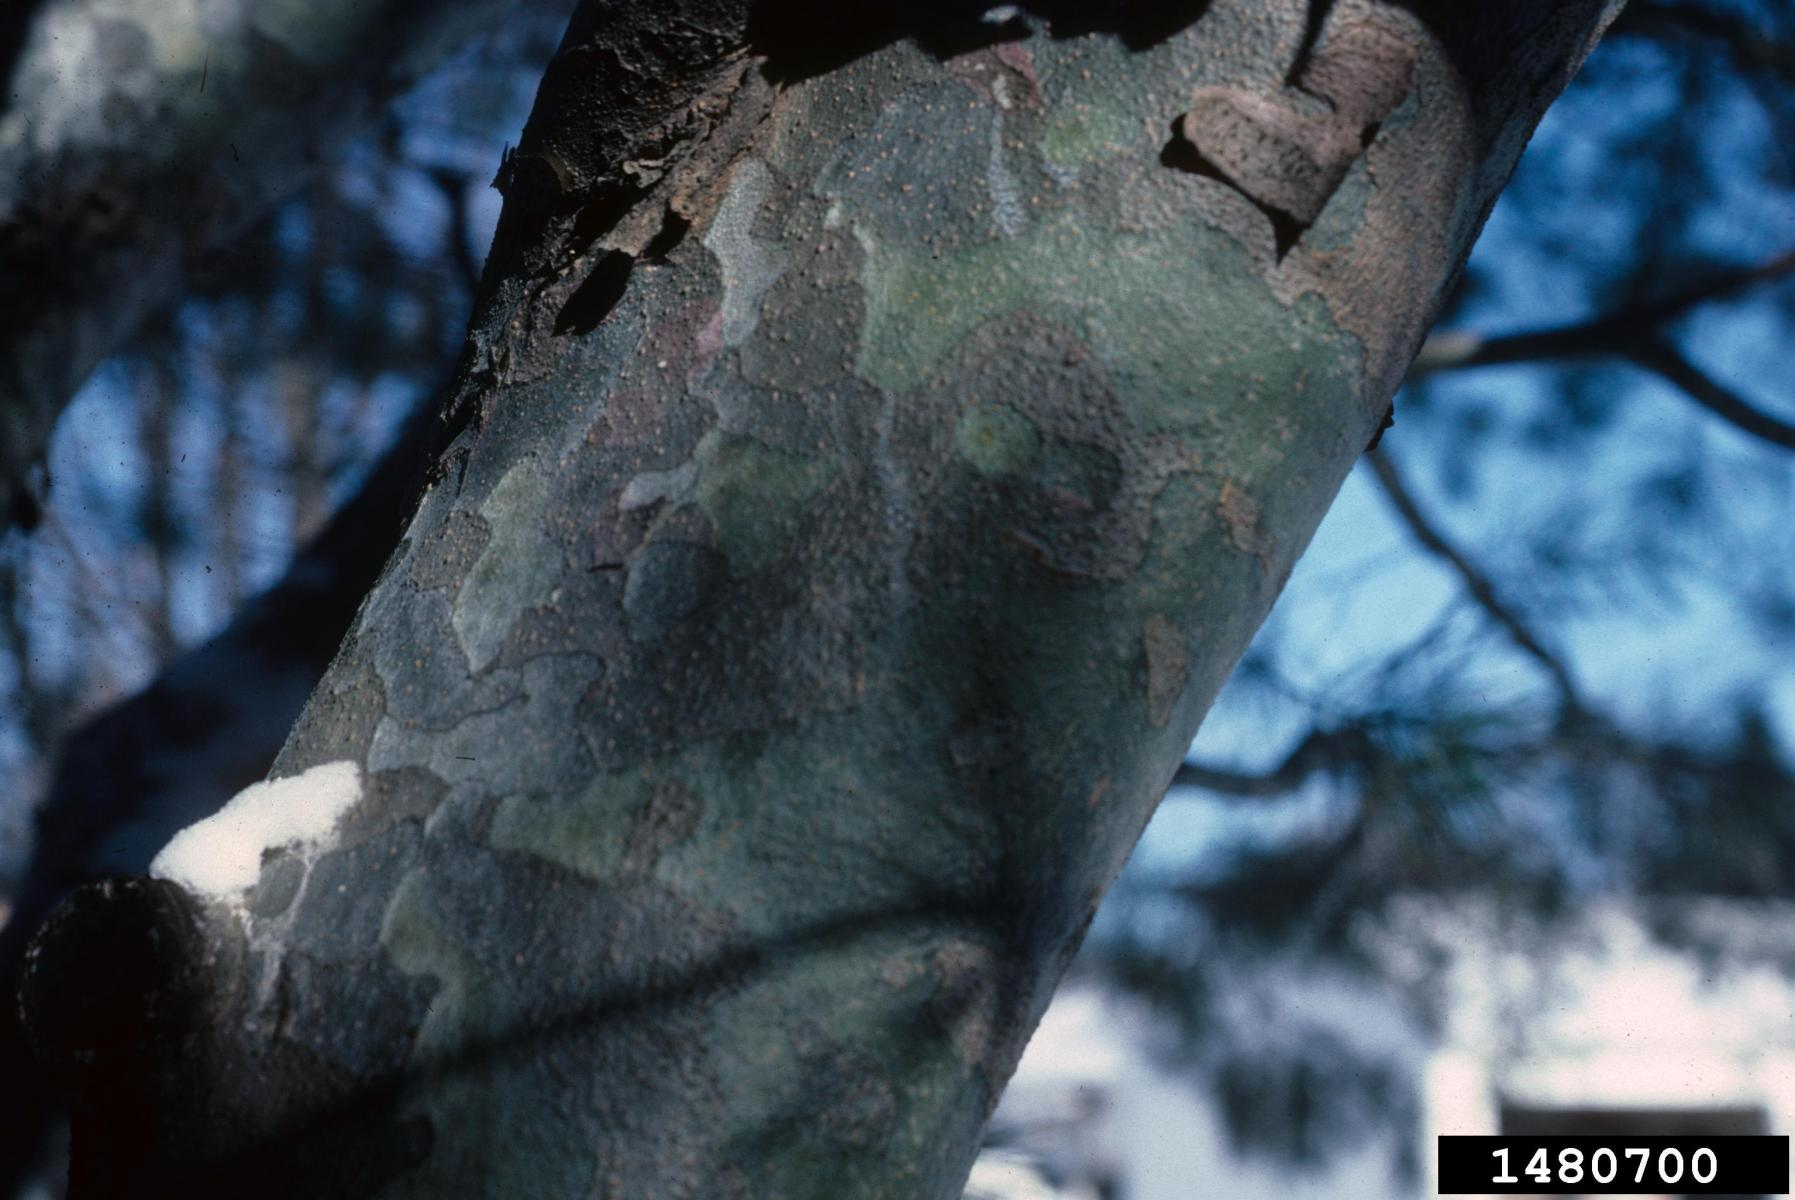 The photo of the bark on Lacebark pine on the right is from: Richard Webb, Bugwood.org